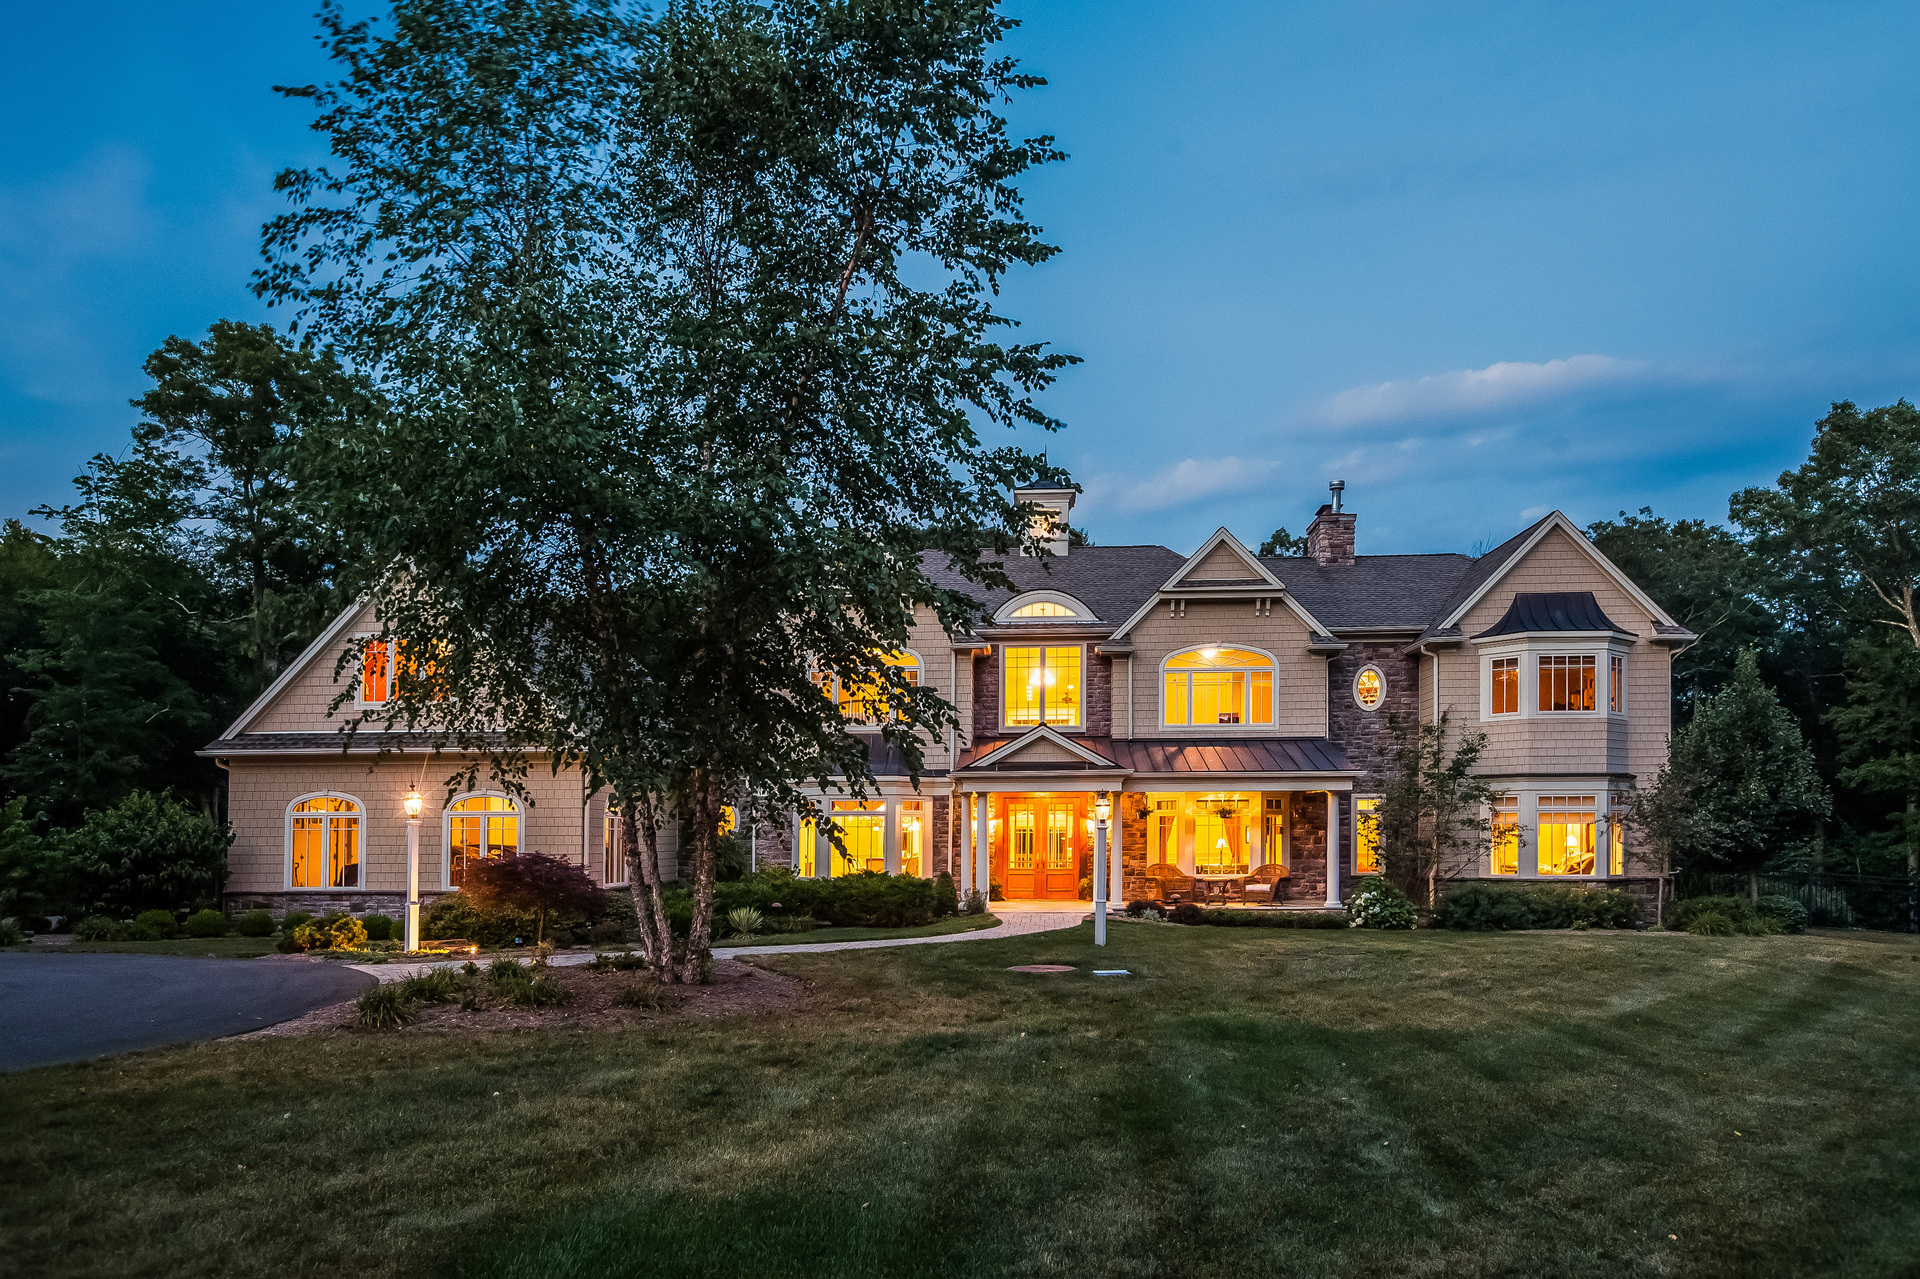 Casa Unifamiliar por un Venta en Exquisite Custom Built Home on 6+ Acres 91 Half Mile Rd Guilford, Connecticut, 06437 Estados Unidos